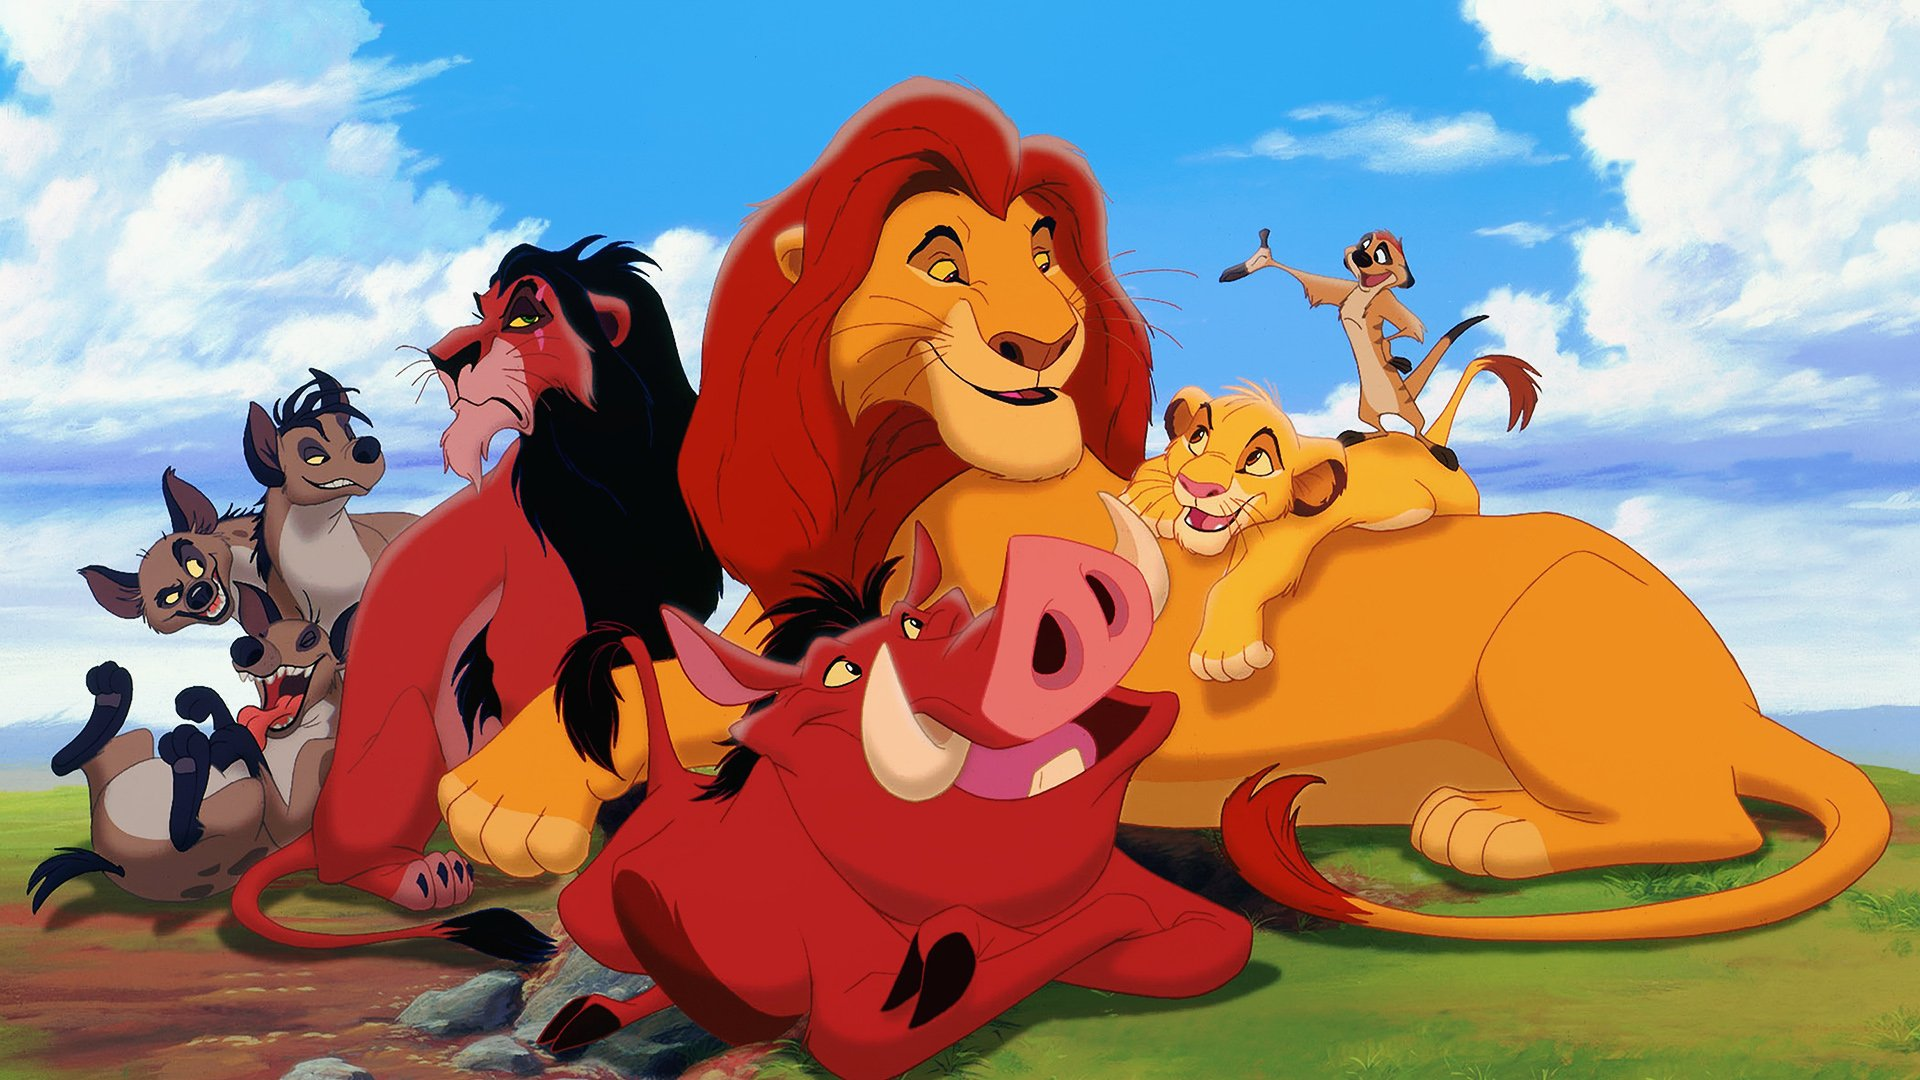 The Lion King Movie Characters Wallpaper 64217 1920x1080px